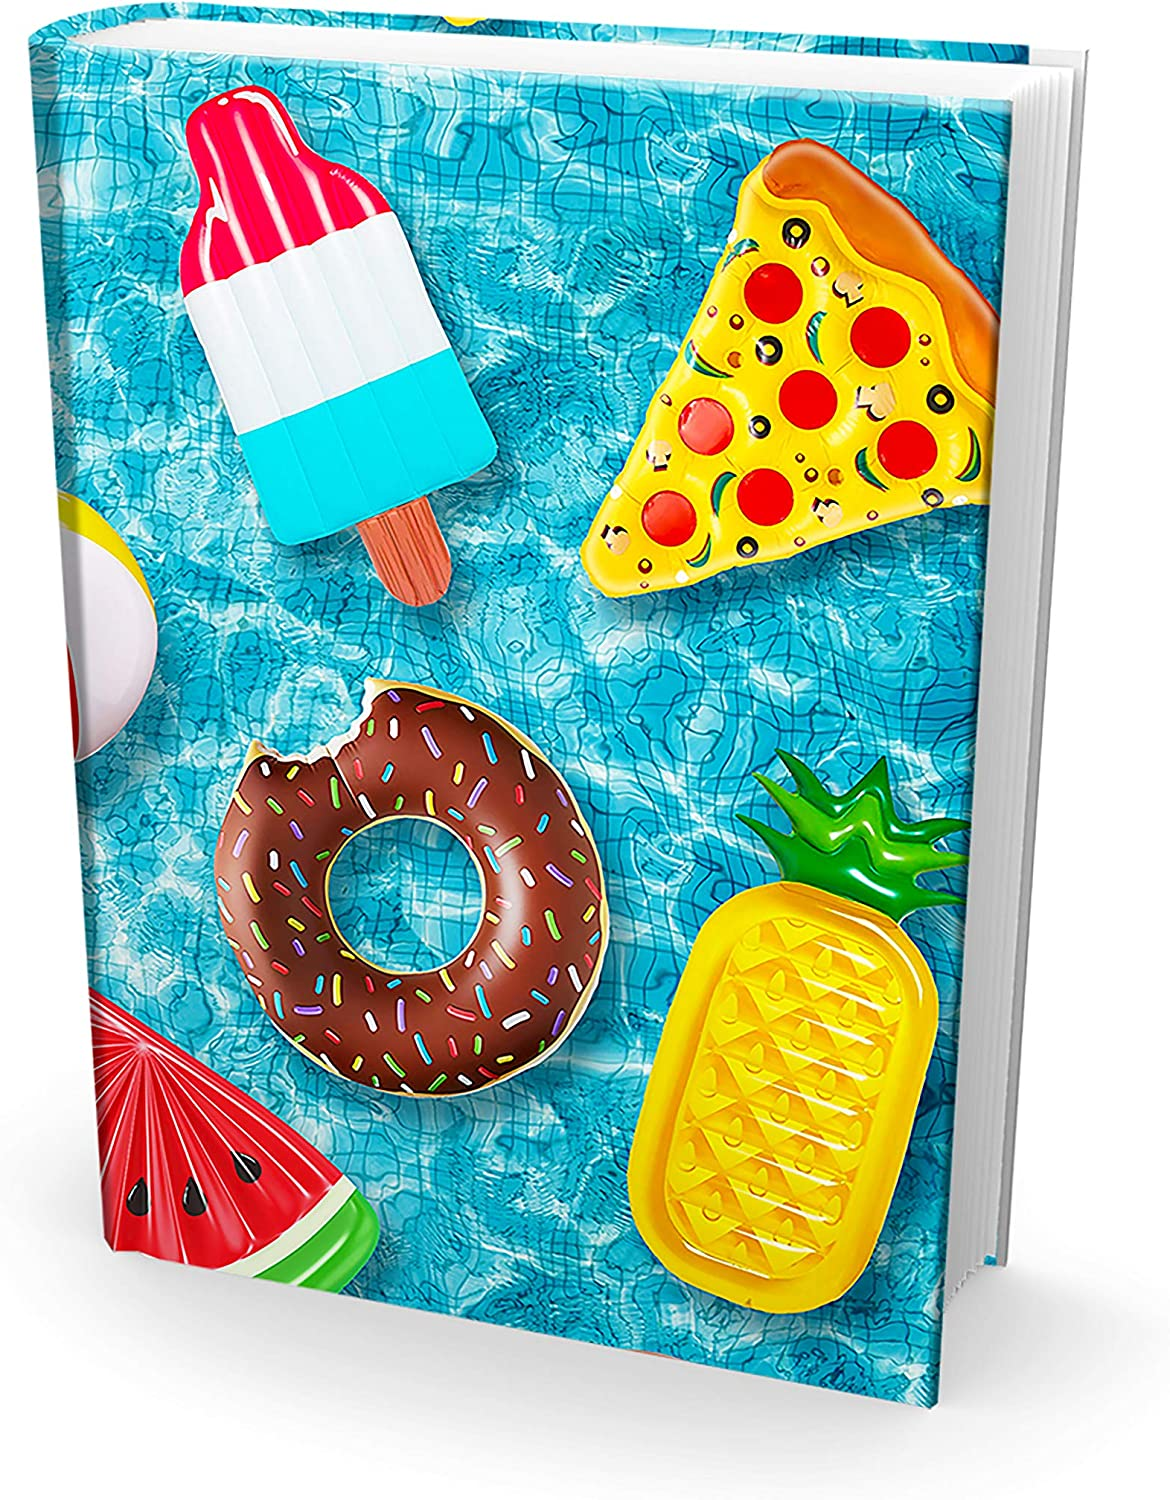 Easy Apply, Reusable Book Covers 1 Pk. Best Jumbo 9x11 Textbook Jackets for Back to School. Stretchable to Fit Most Large Hardcover Books. Perfect Fun, Washable Designs for Girls, Boys, Kids and Teens